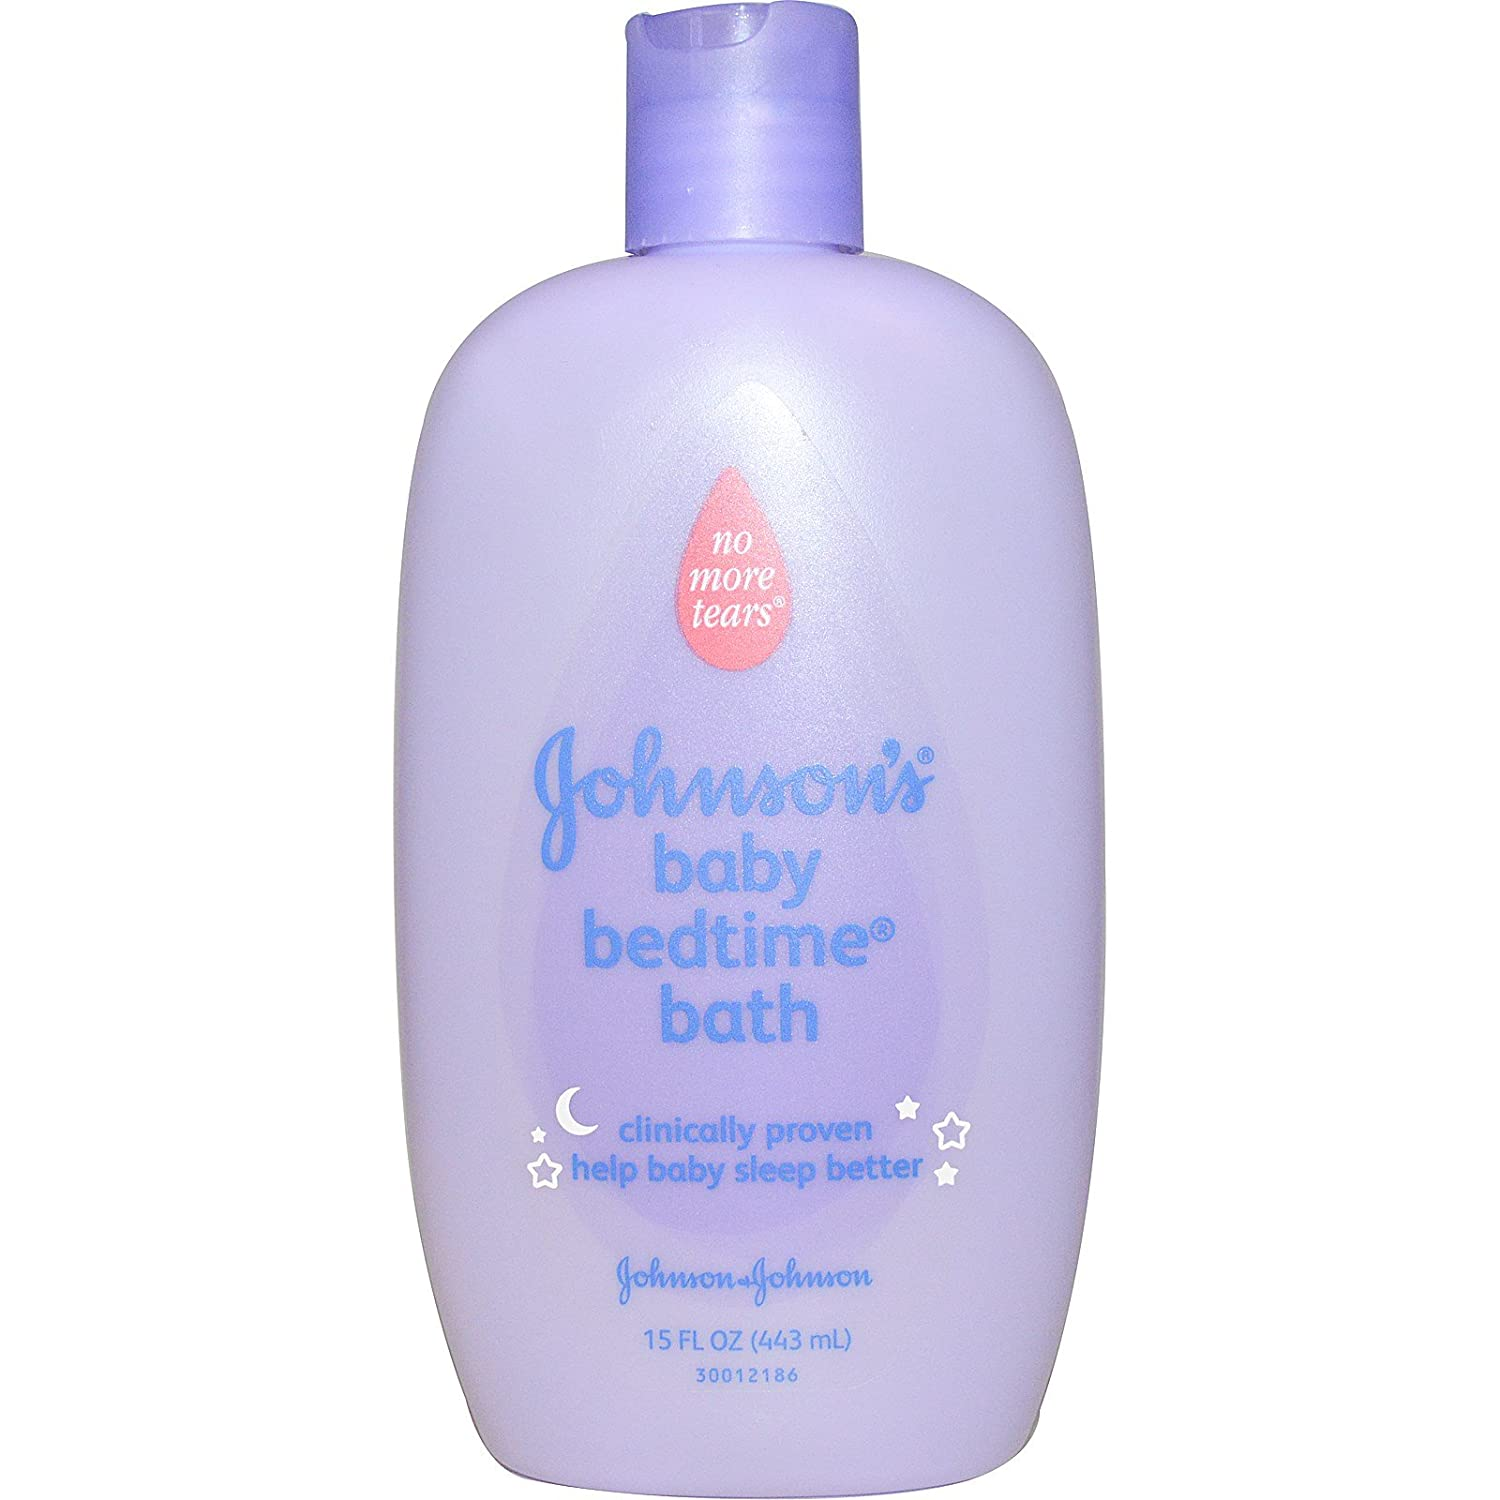 Johnson & Johnson, Baby Bedtime Bath, 15 fl oz (443 ml) - 3PC Johnson's Baby